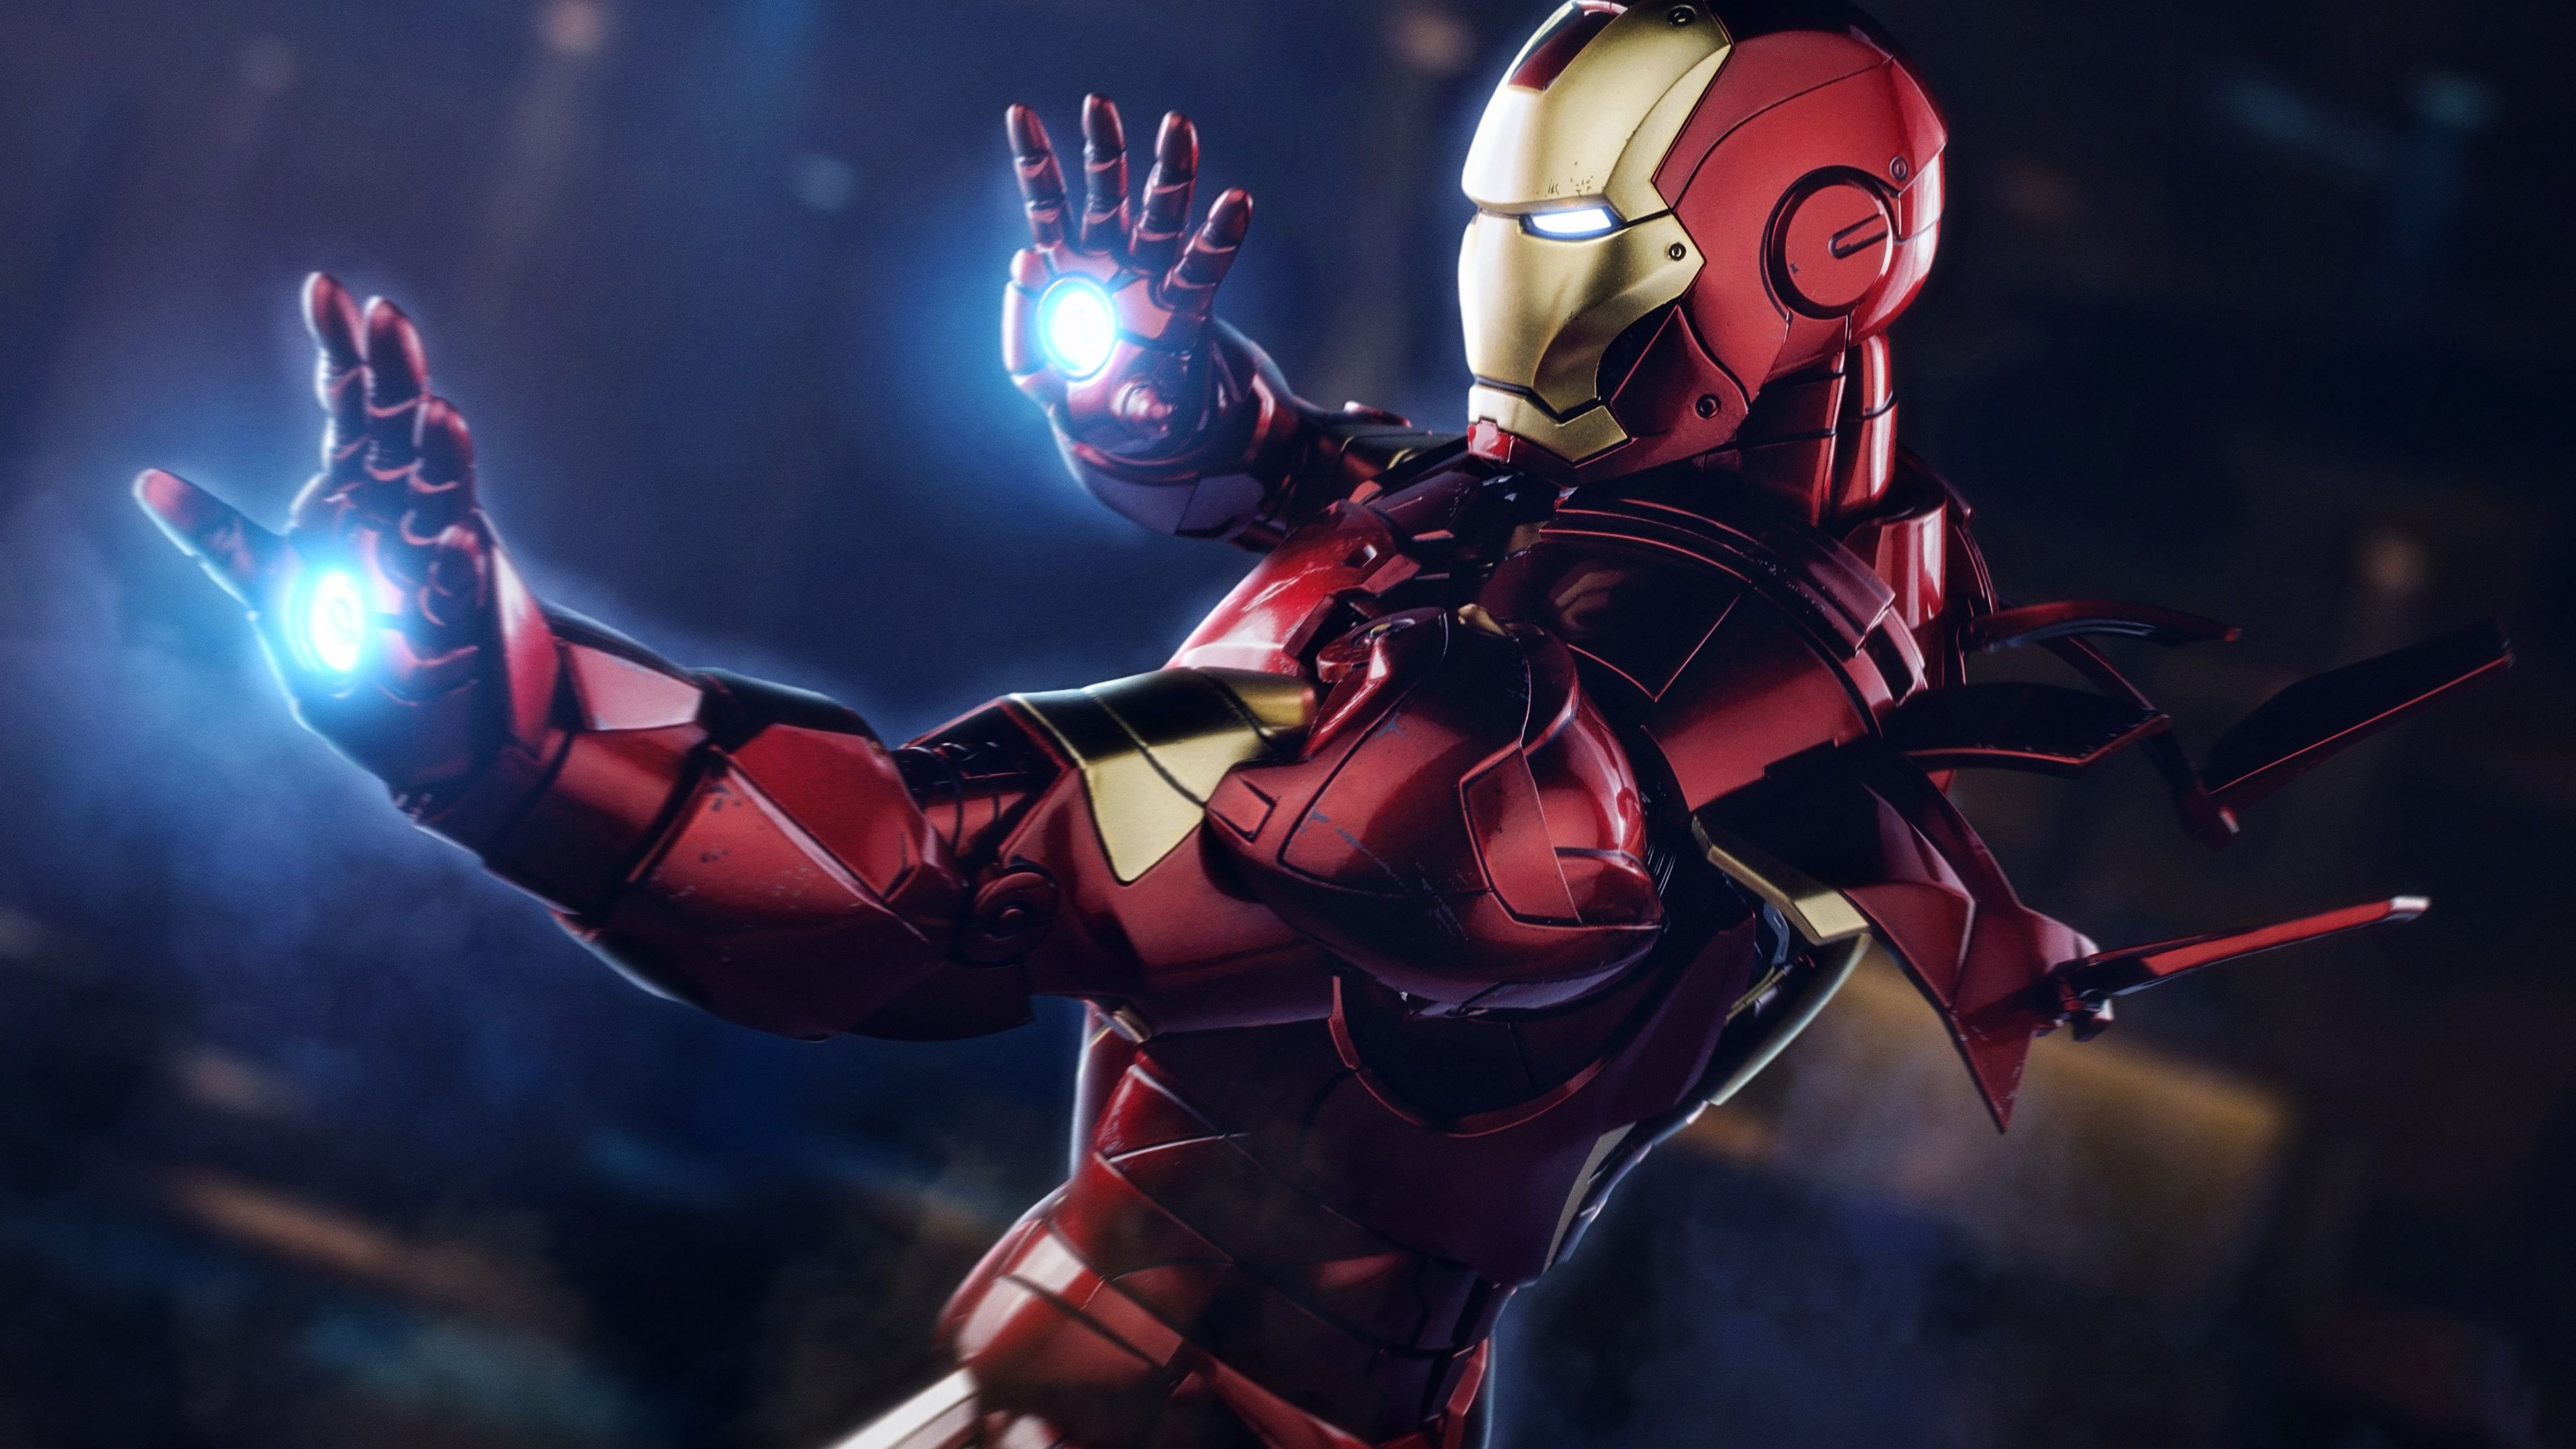 Iron Man 2018 5k Superheroes Wallpapers Iron Man Wallpapers Hd Wallpapers 5k Wallpapers 4k Wallpapers Iron Man Wallpaper Superhero Iron Man